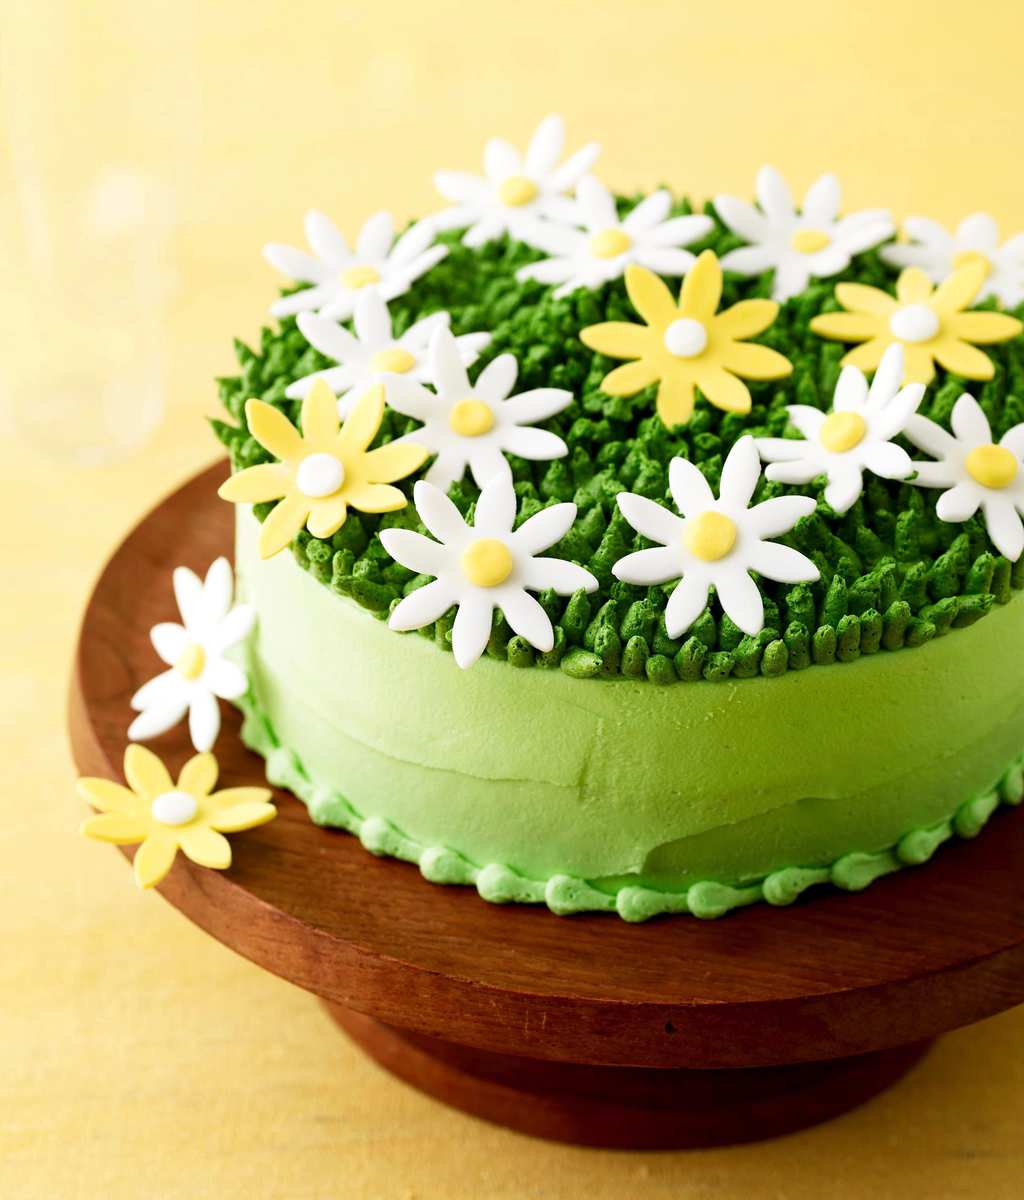 Green spring daisy cake on a wood pedistal